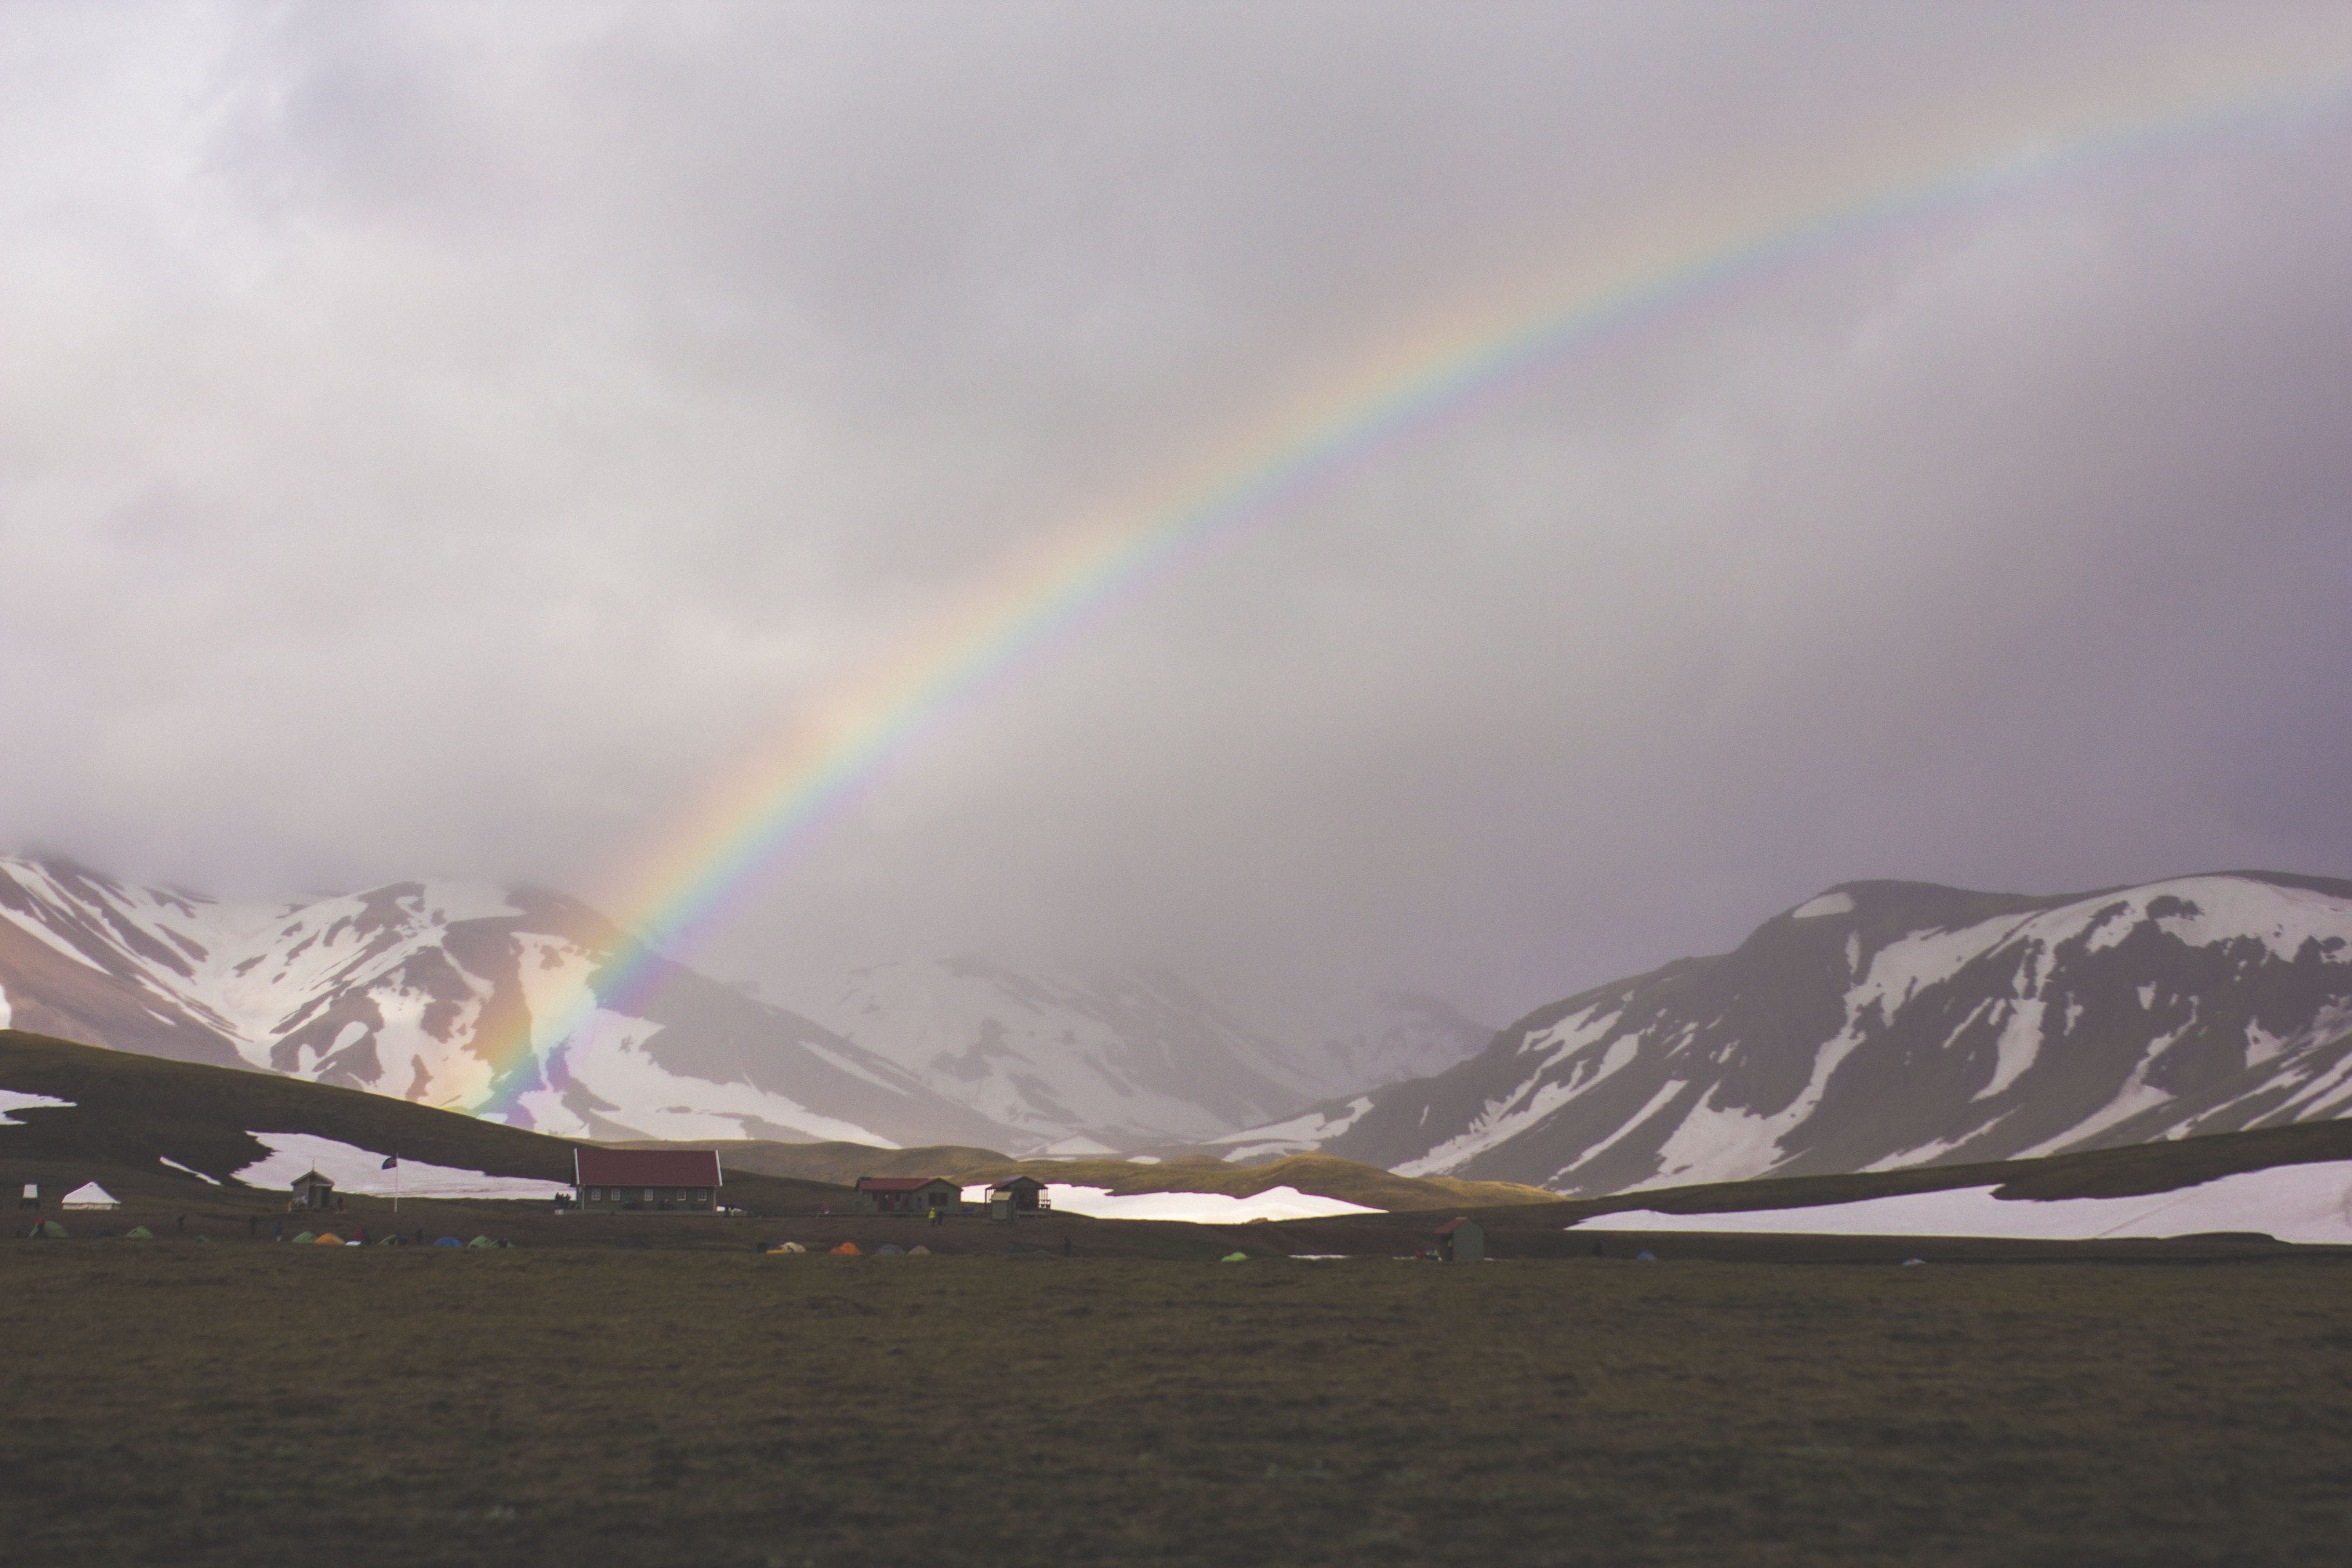 gray mountain near body of water under white rainbow